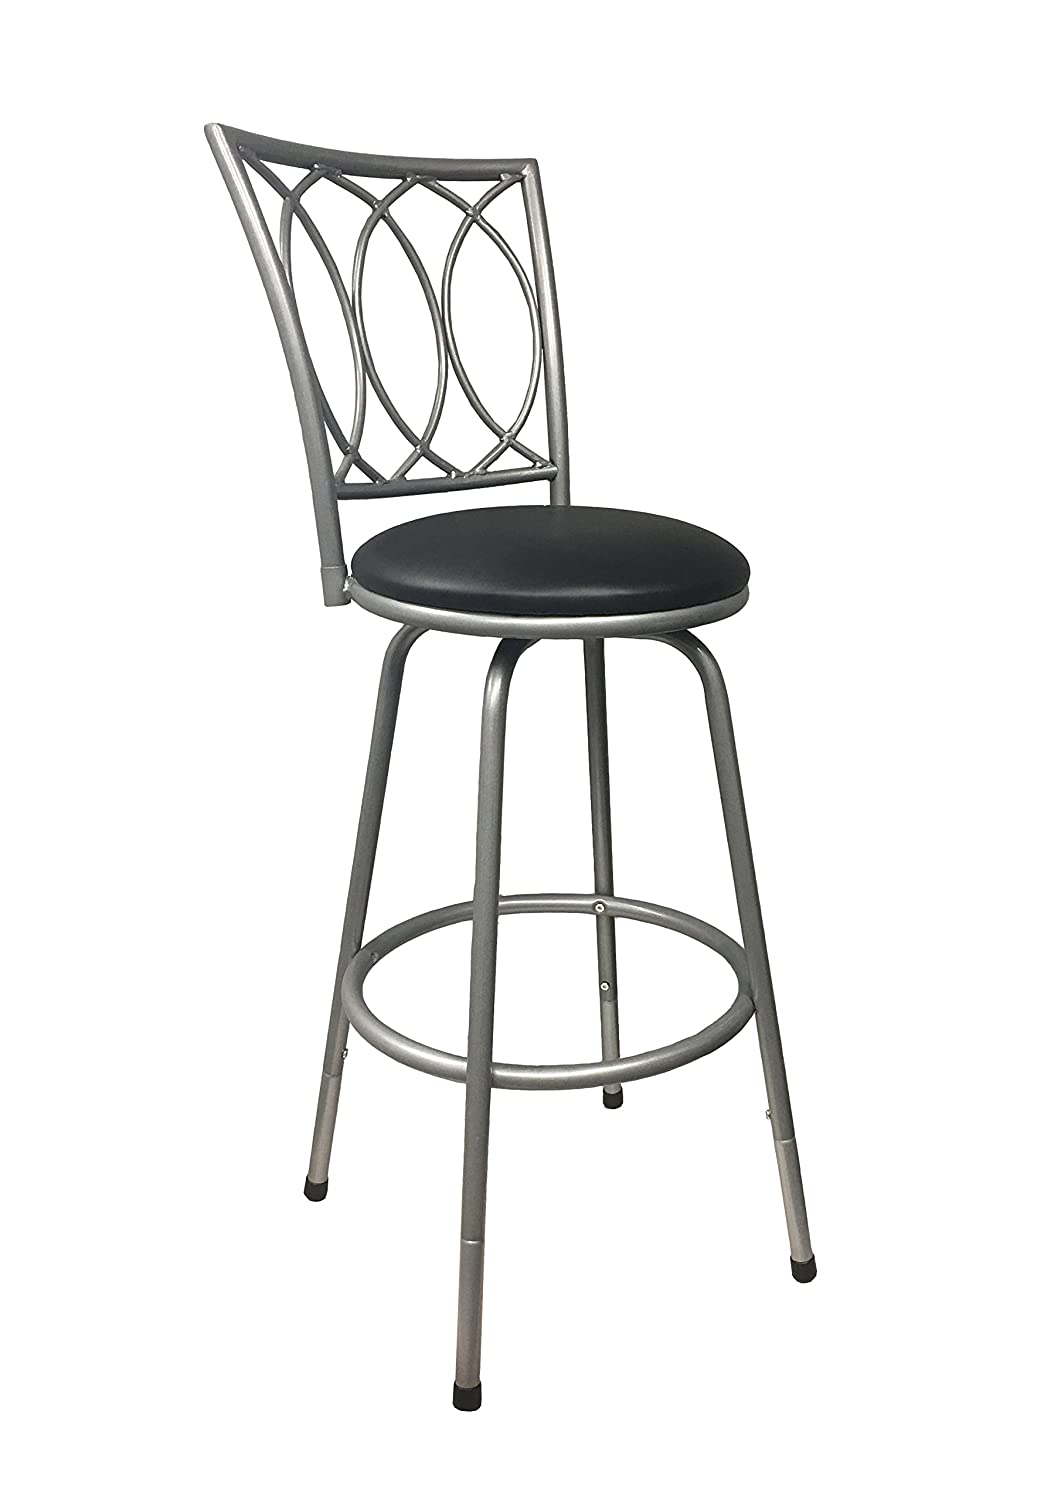 Redico Counter-to-Bar Height Adjustable 360 Degree Swivel Metal Bar Stool, Powder Coated Silver